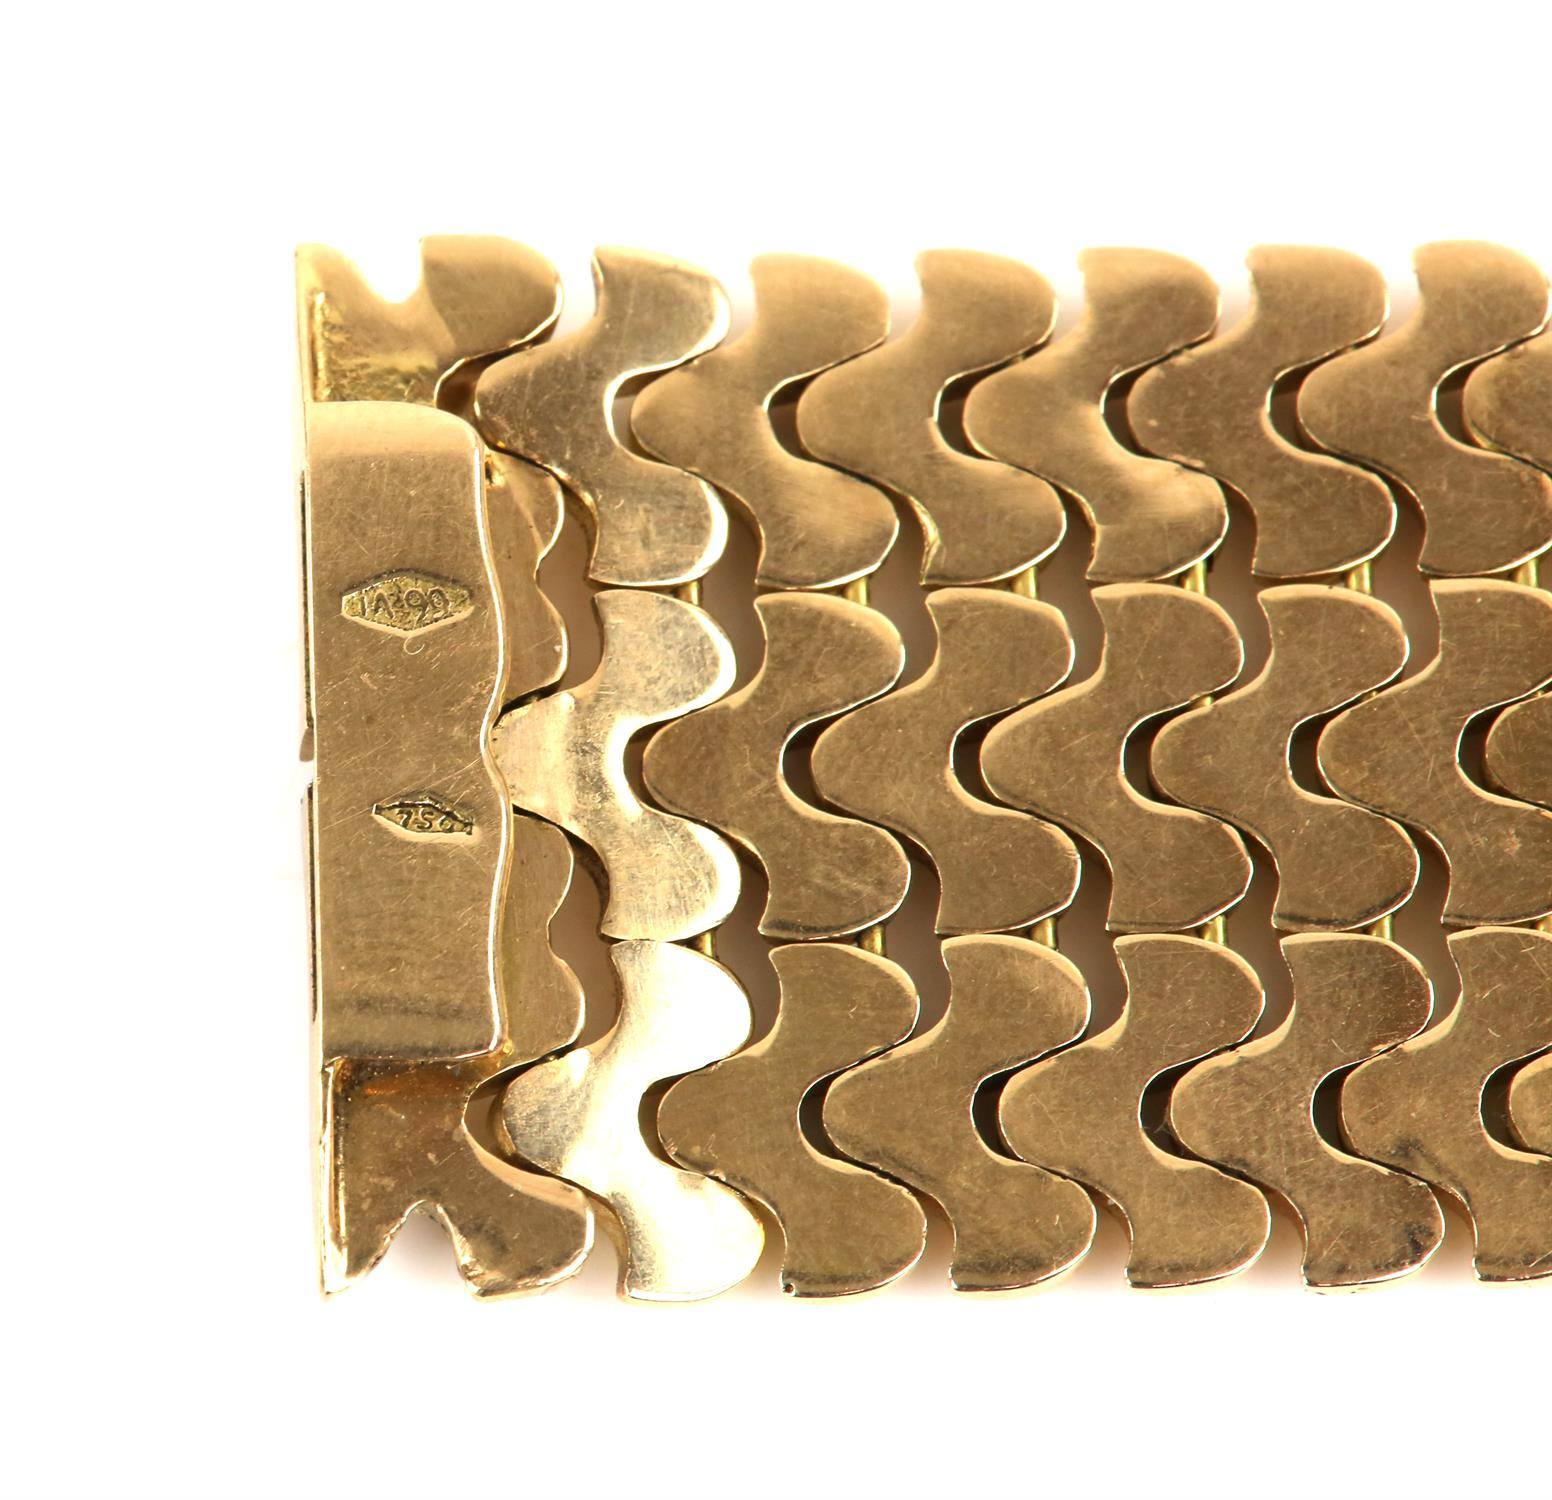 Vintage gold bracelet, three rows of fancy links, 3.5cm in width, with concealed push clasp, - Image 4 of 4